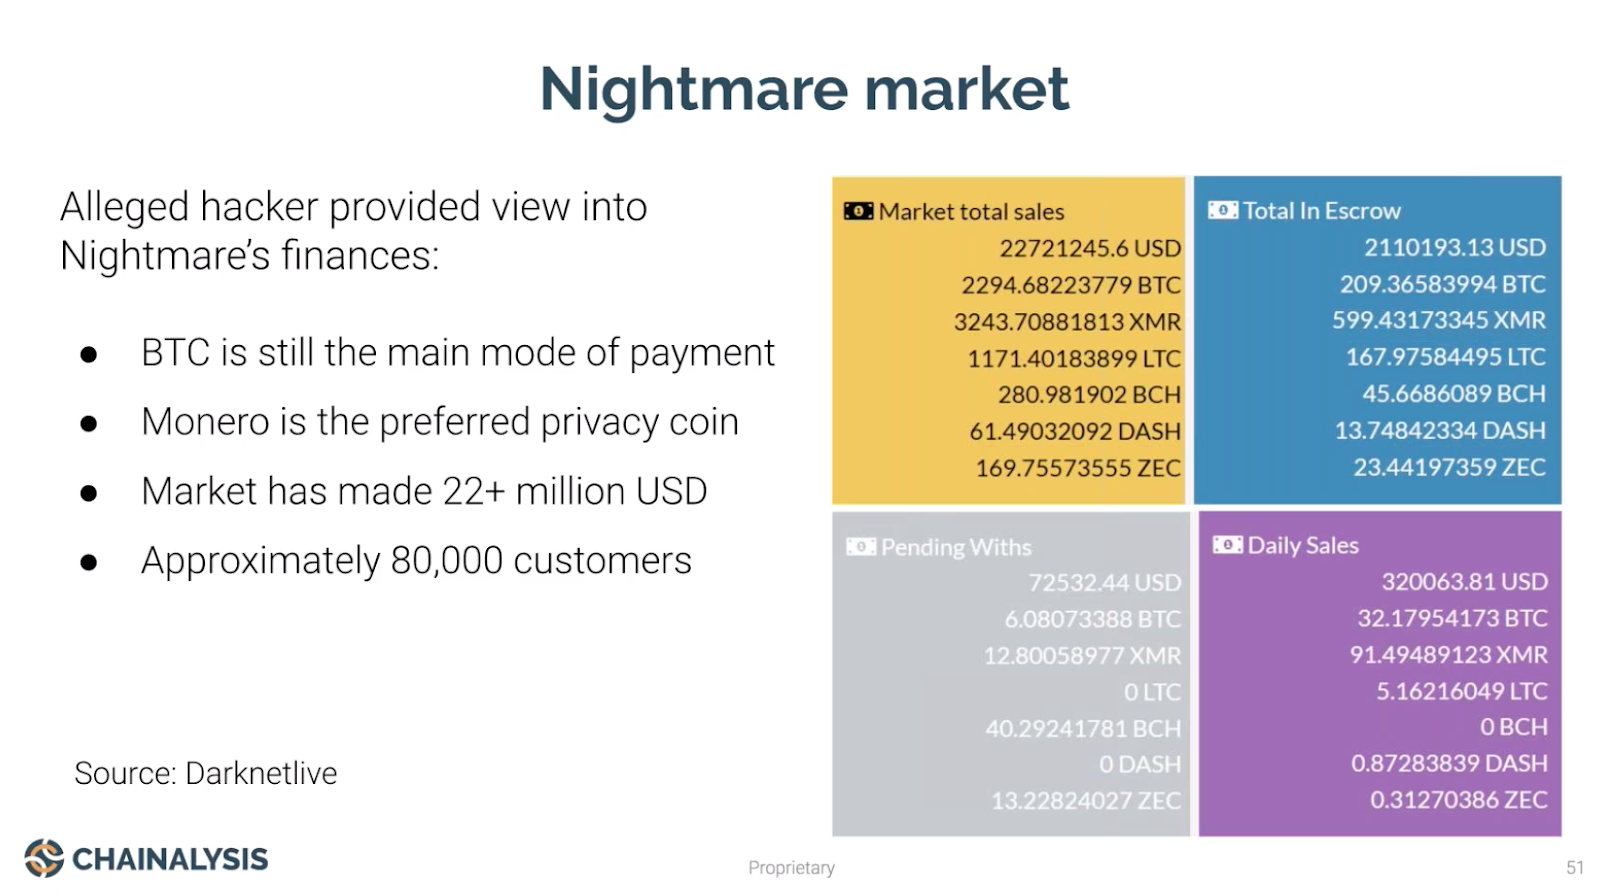 Chainalysis: Most Mixed Bitcoin Not Used for Illicit Purposes